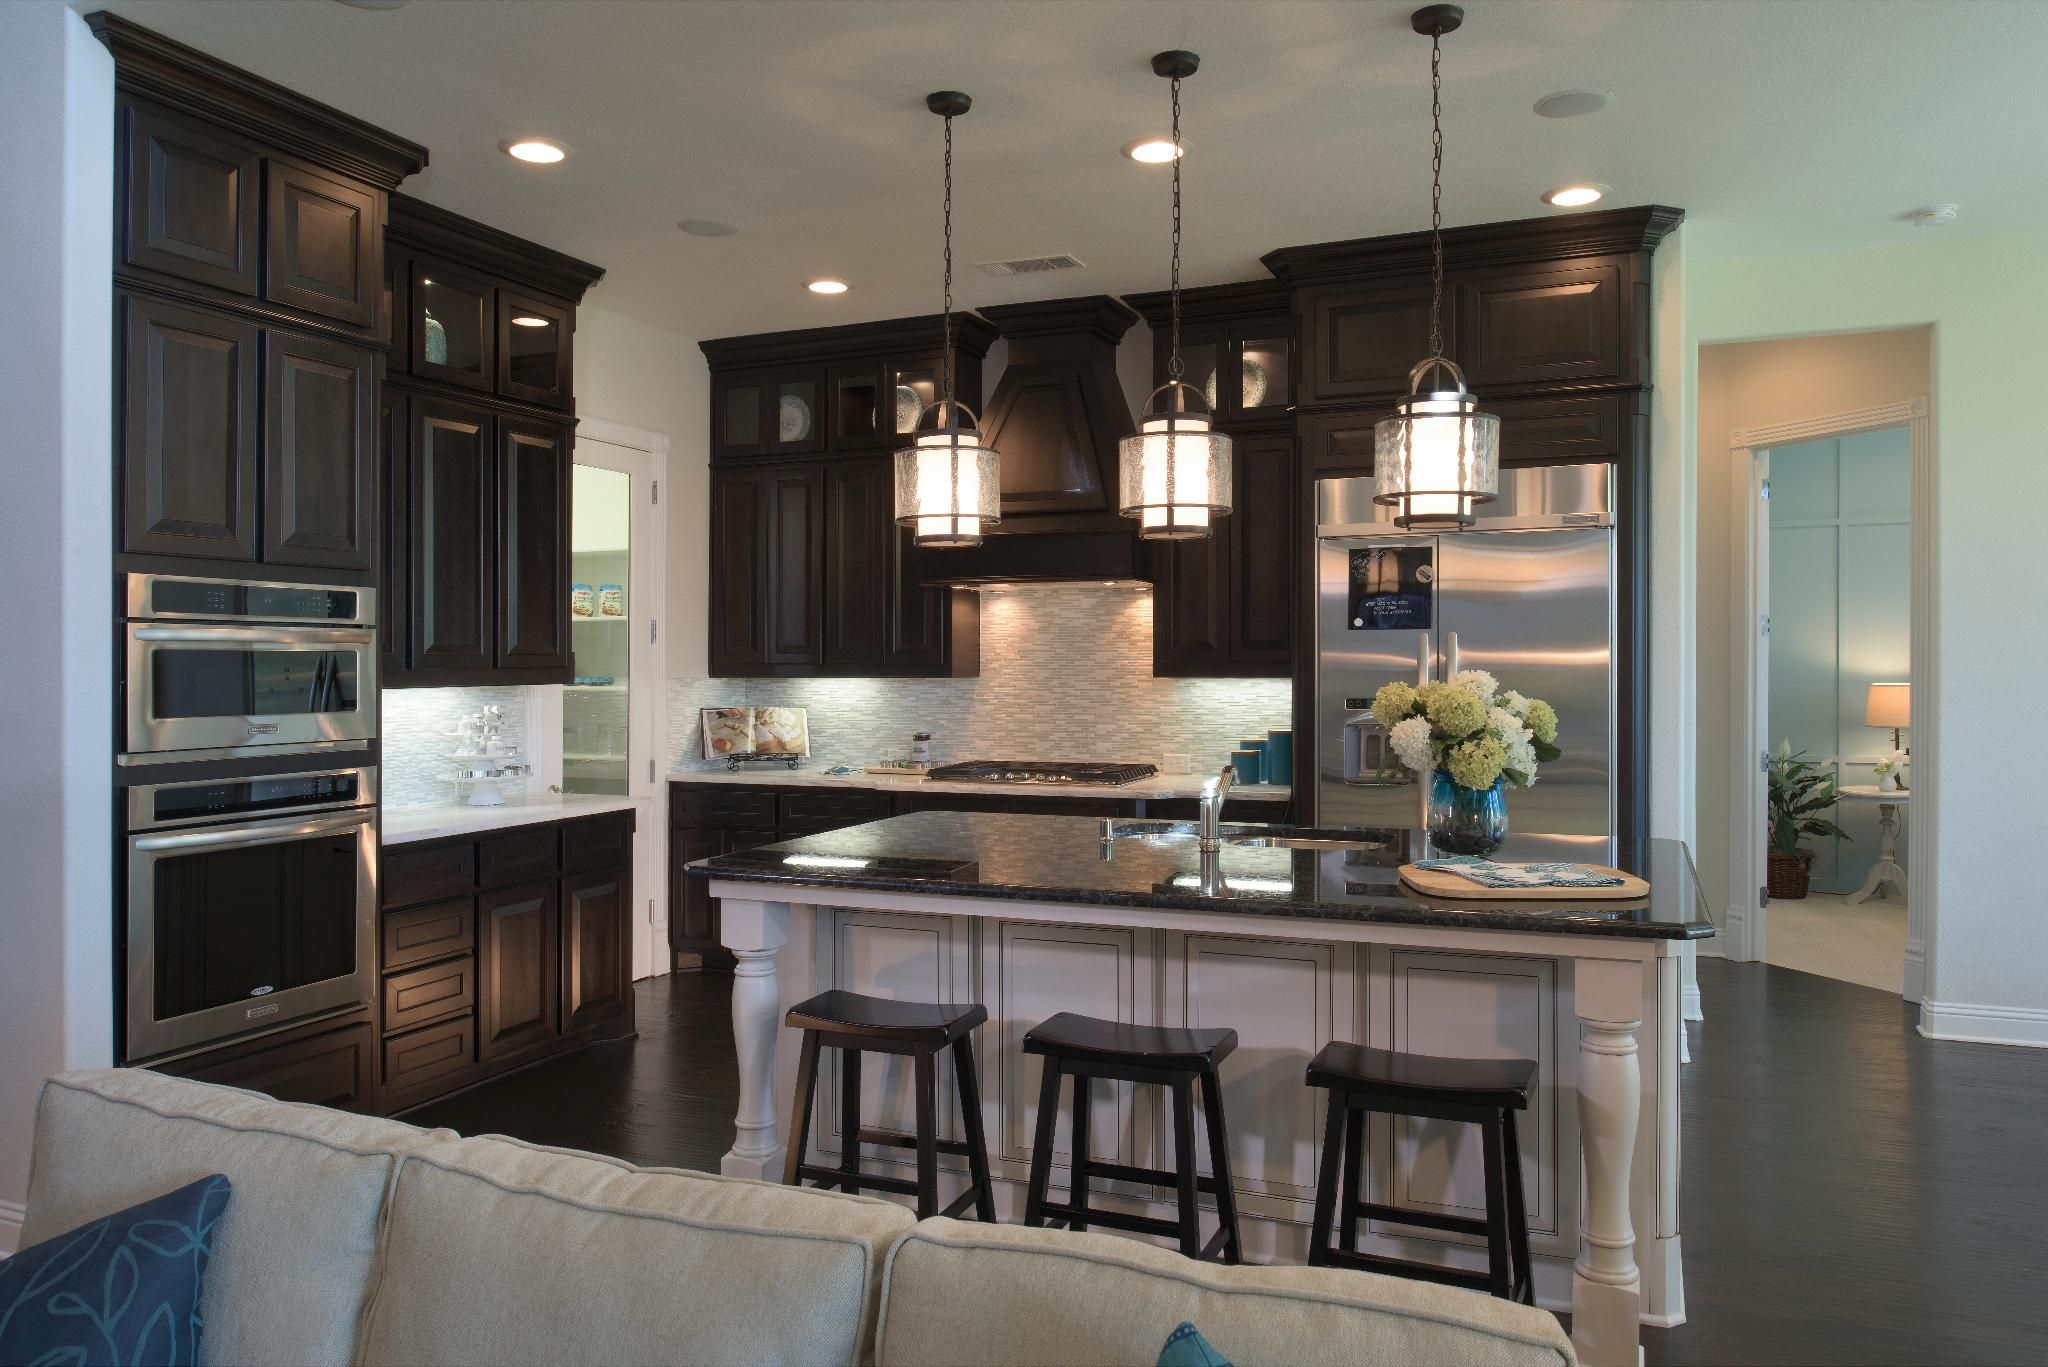 Toll brothers at canyon falls tx kitchens pinterest best kitchens ideas Kitchen design brookfield ct